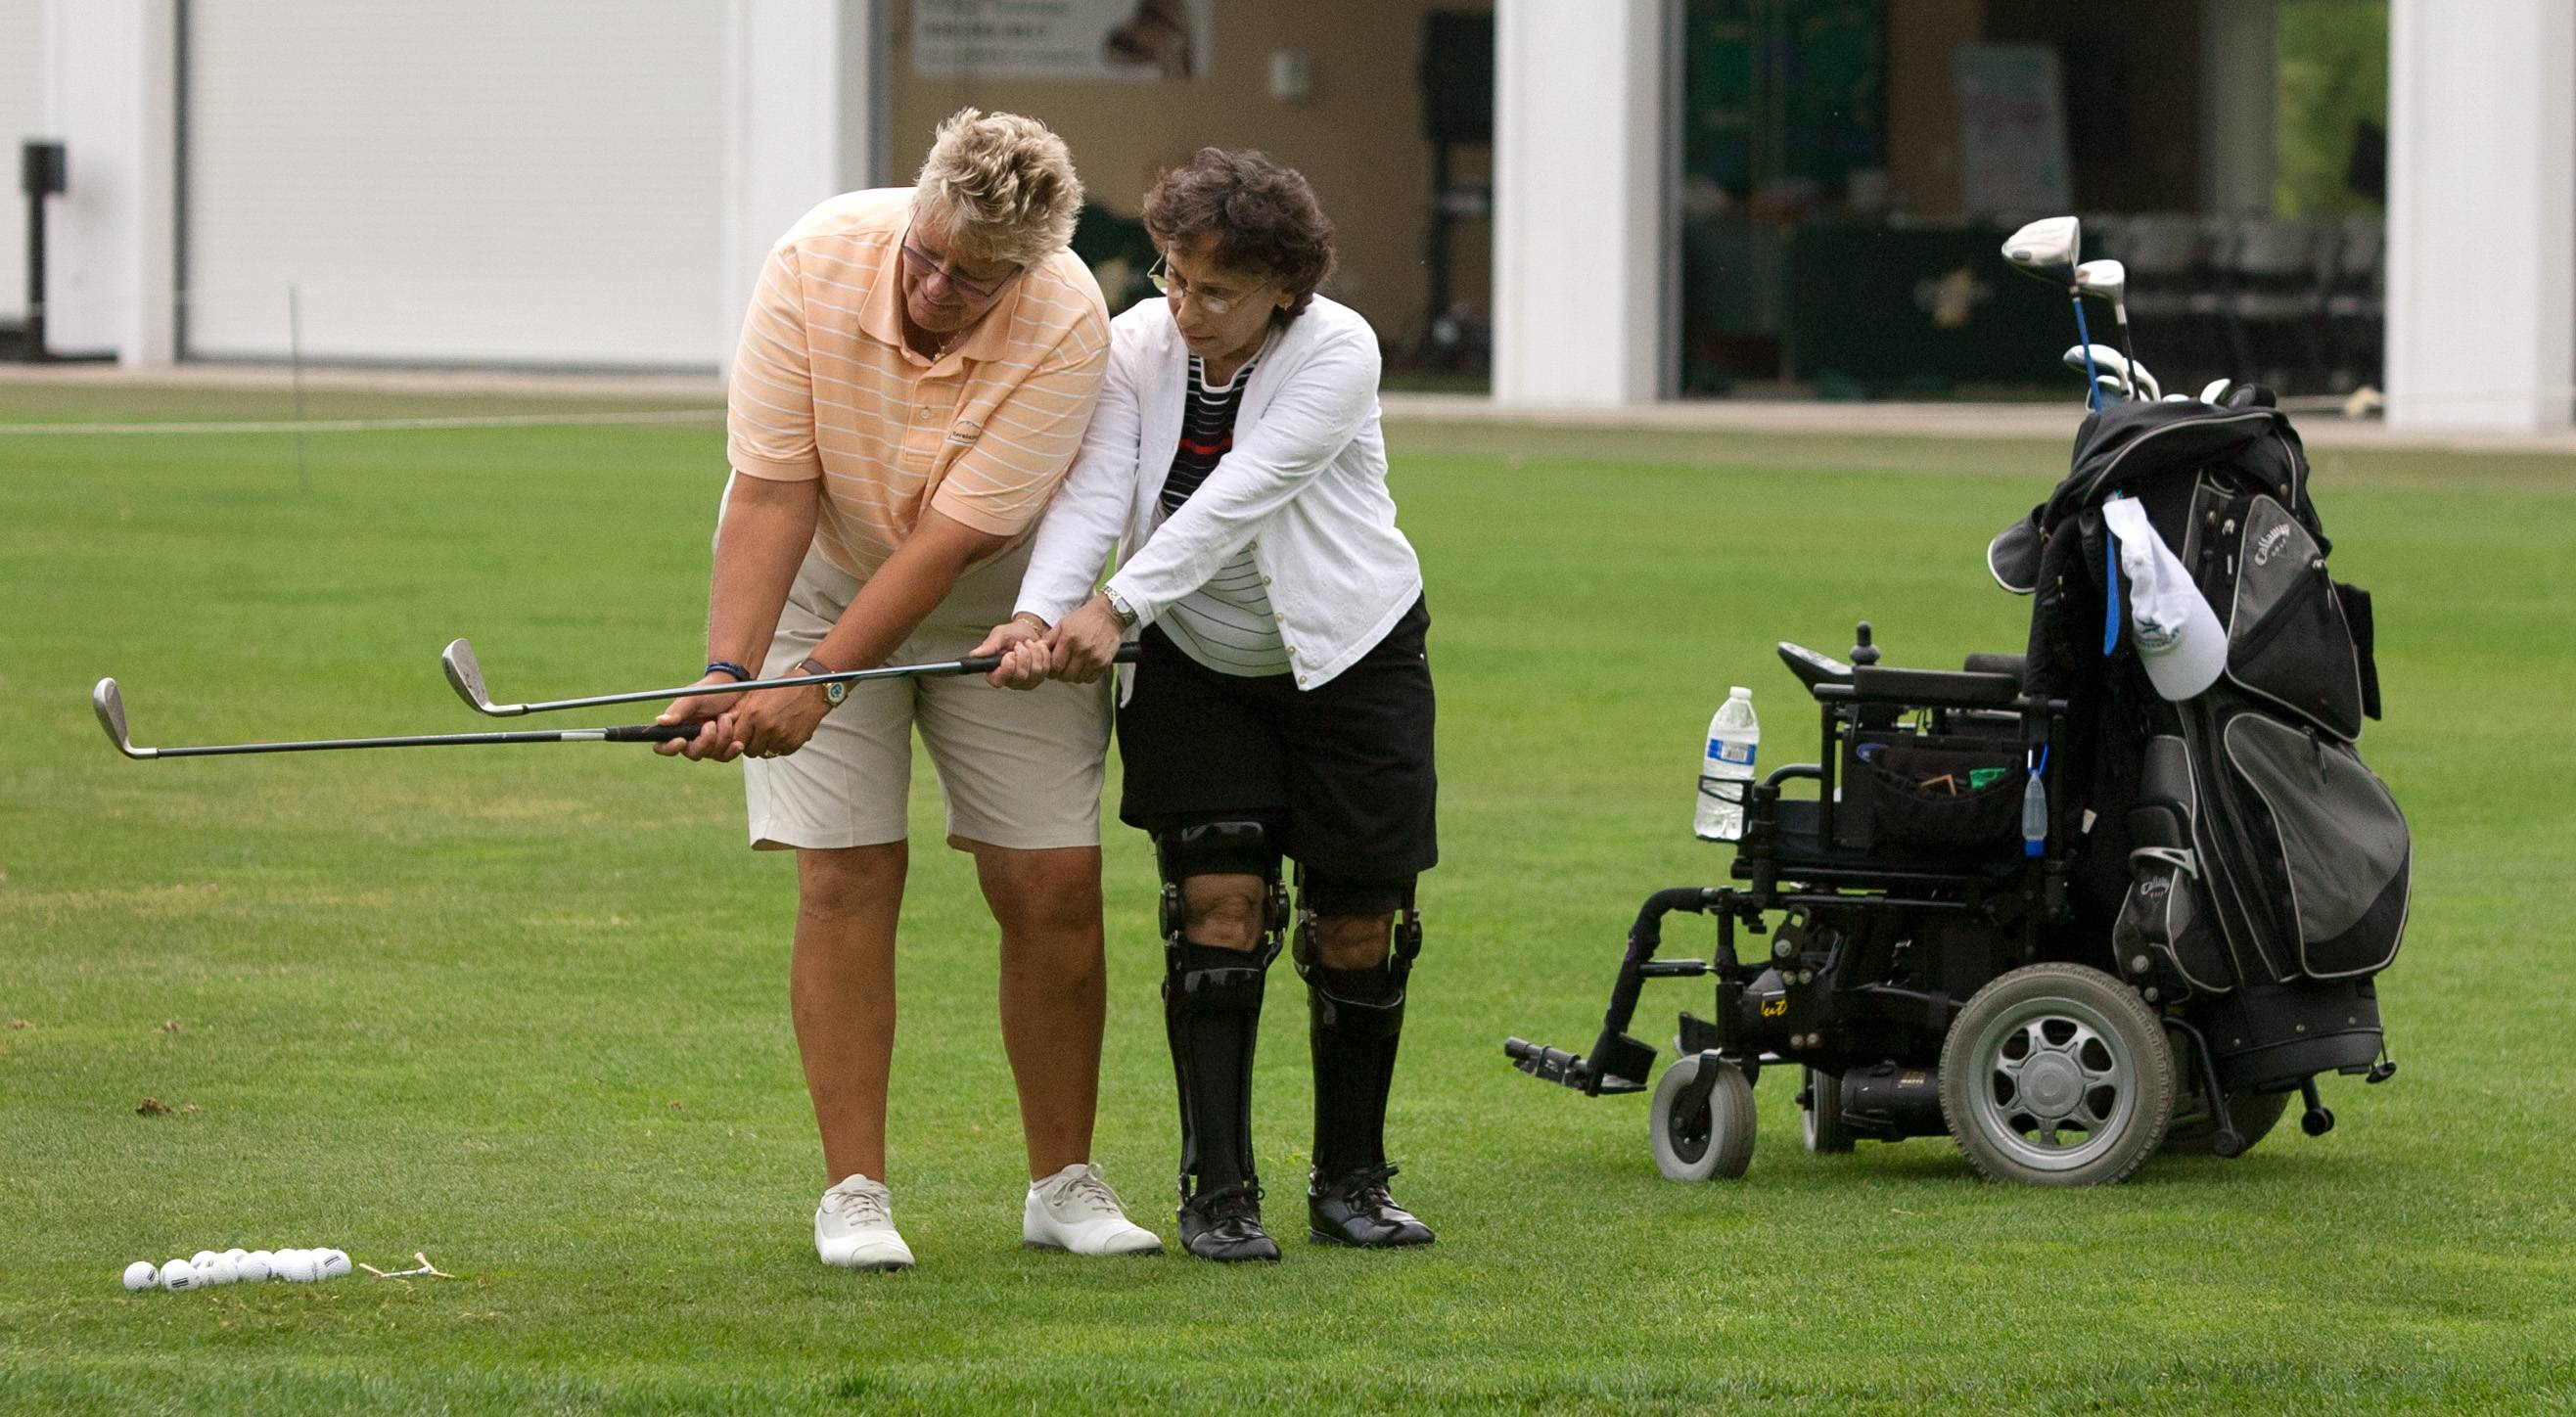 Kathy Williams, left, of Revelation Golf, teaches club speed to Judi Ruiz as part of a monthly golf clinic at Cantigny Golf, in Wheaton, for veterans with physical disabilities and PTSD syndrome.